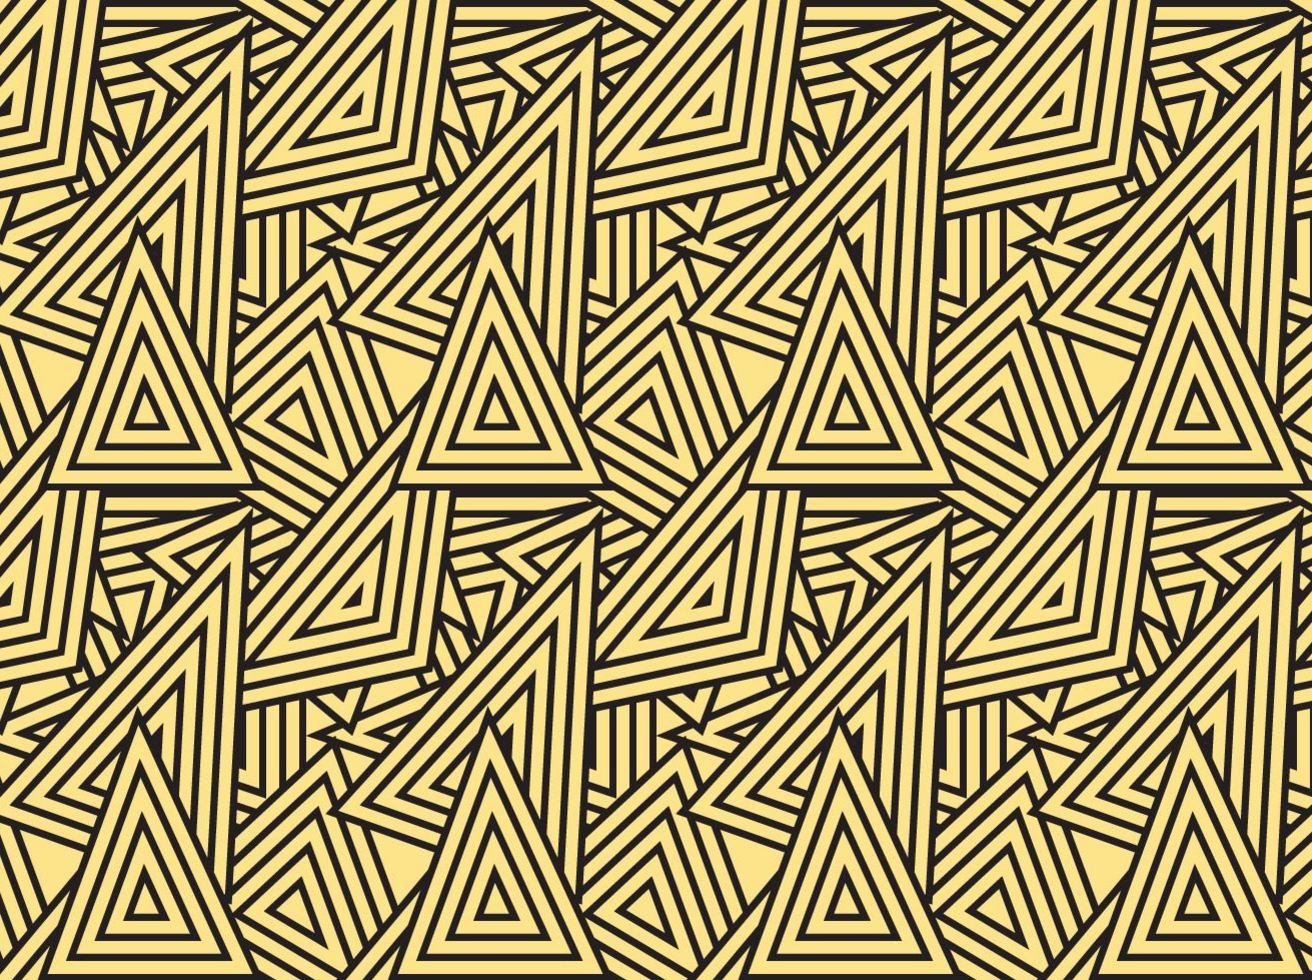 Free Abstract Geometric Pattern #2